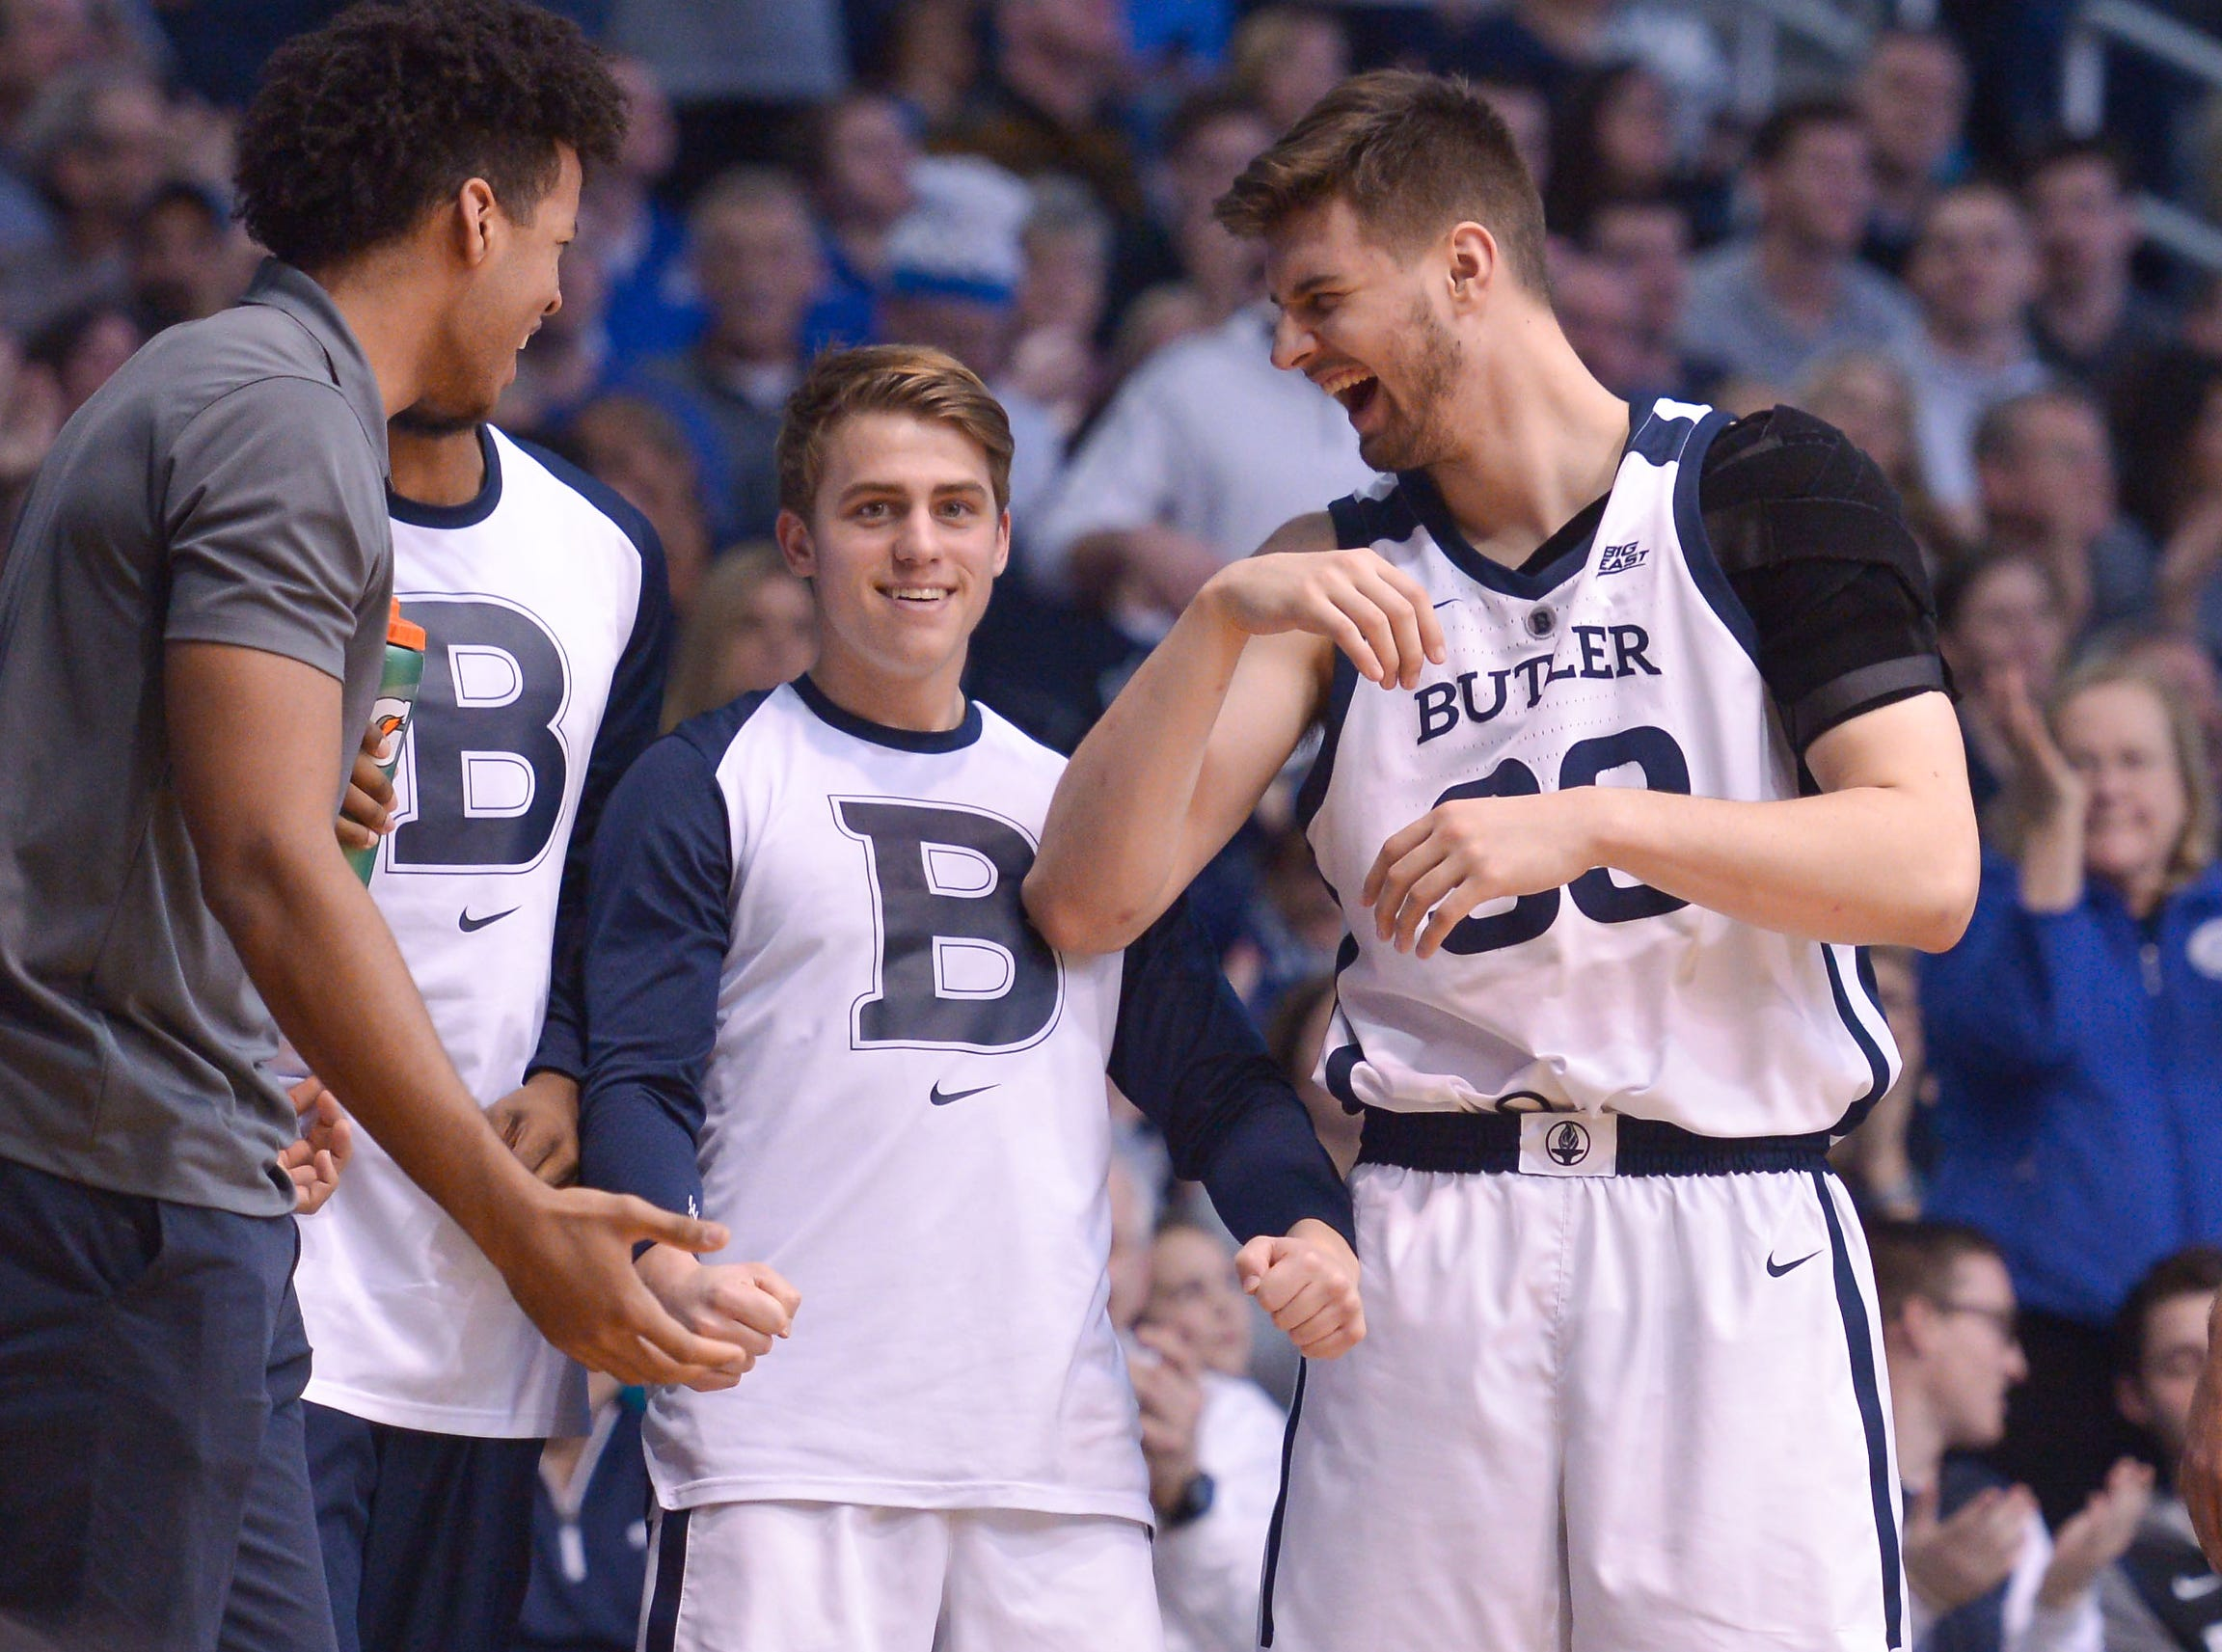 Butler Bulldogs bench players share a laugh during the second half of game between Butler University and Creighton University, at Hinkle Fieldhouse in Indianapolis, Indiana on Saturday, Jan. 5, 2019. The Butler Bulldogs defeated the Creighton Bluejays 84-69.